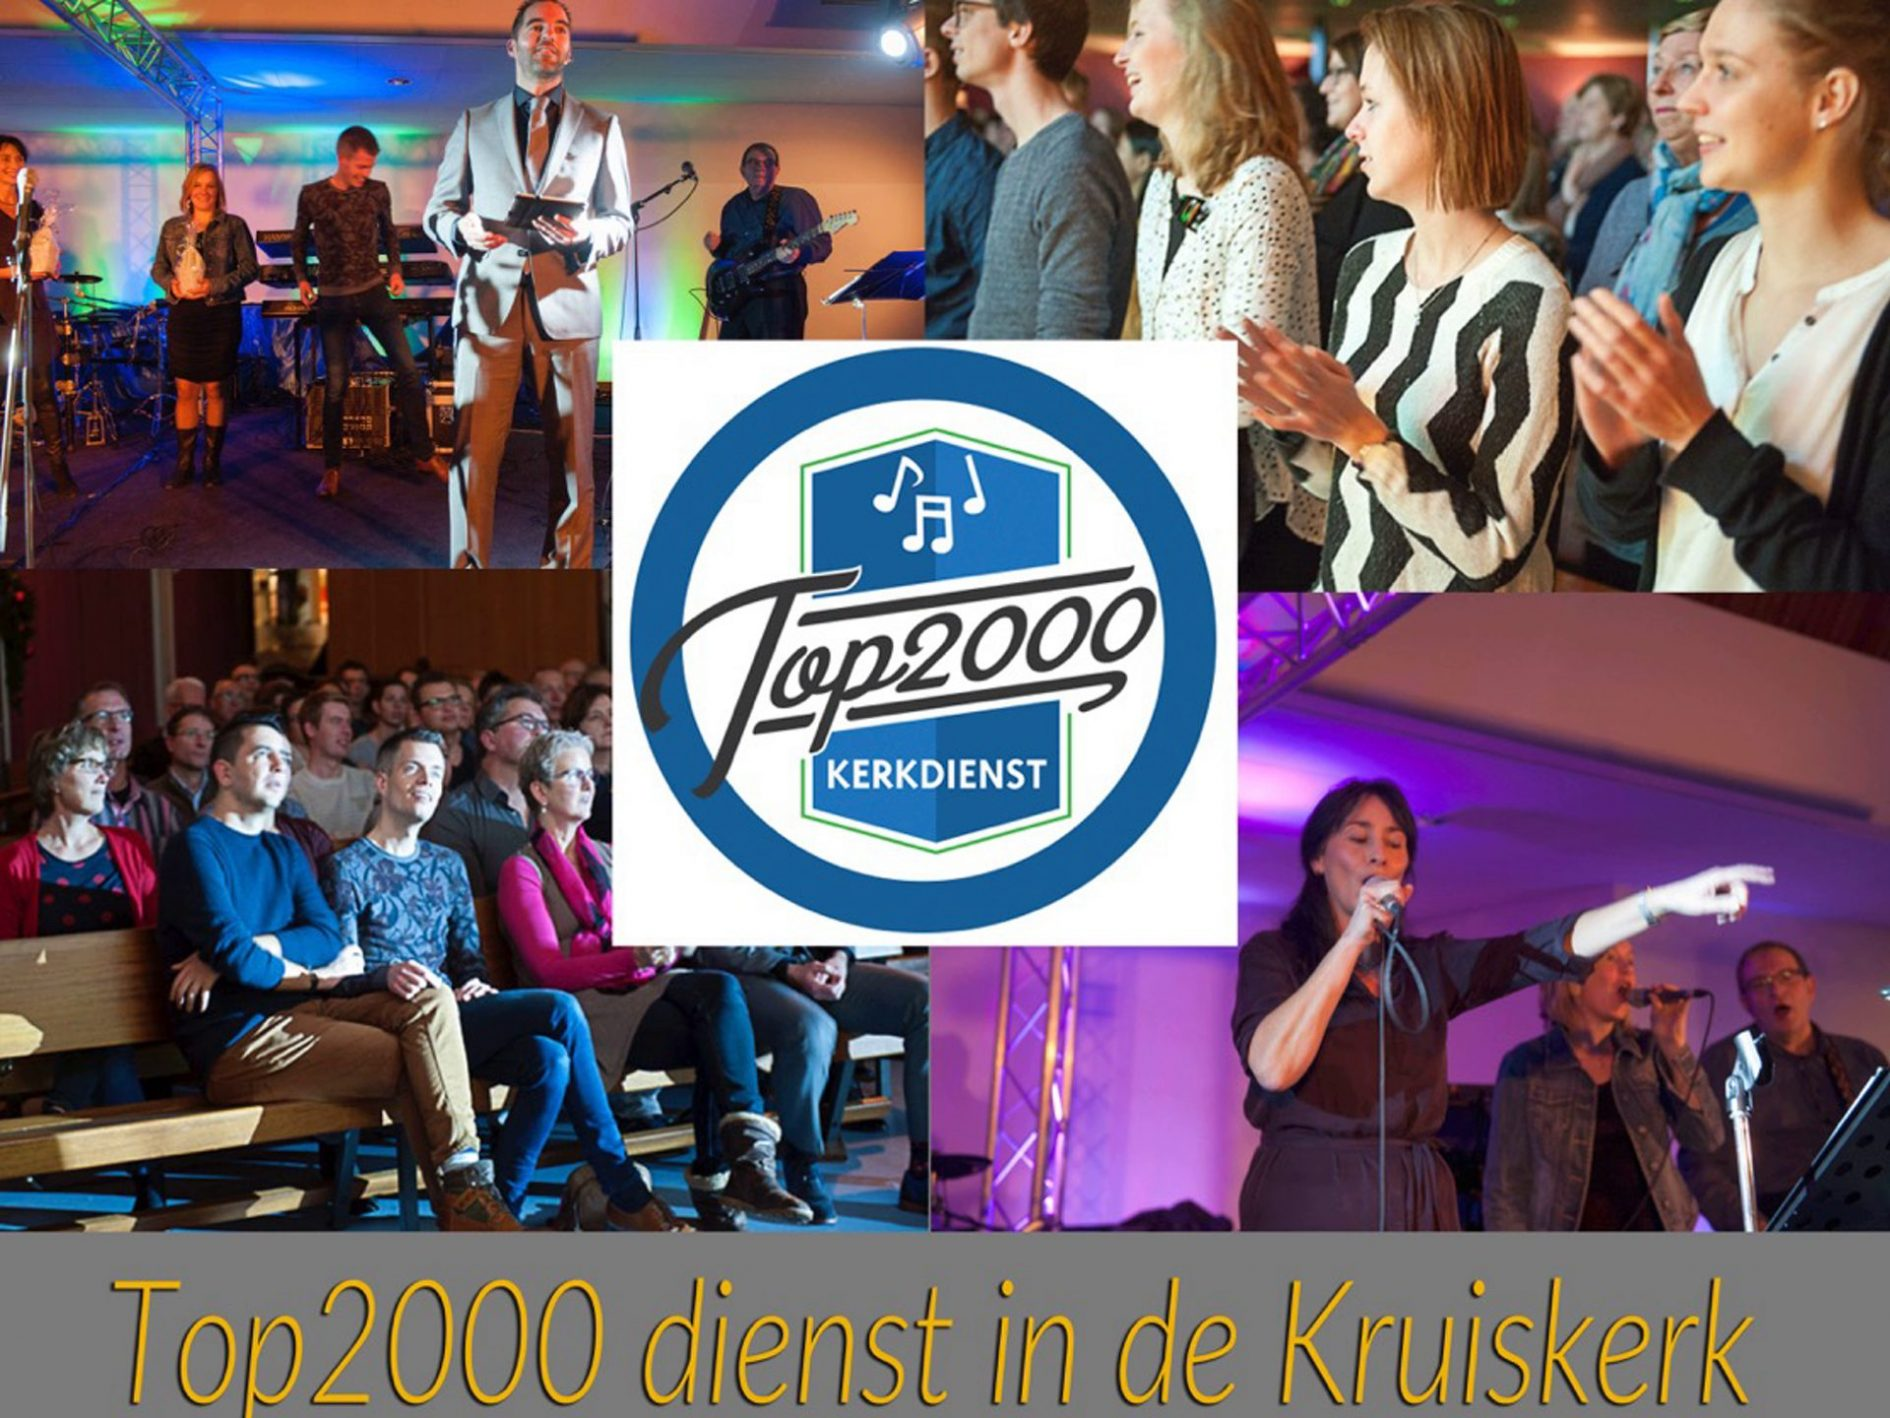 28 dec – Top2000 dienst, nu stemmen!